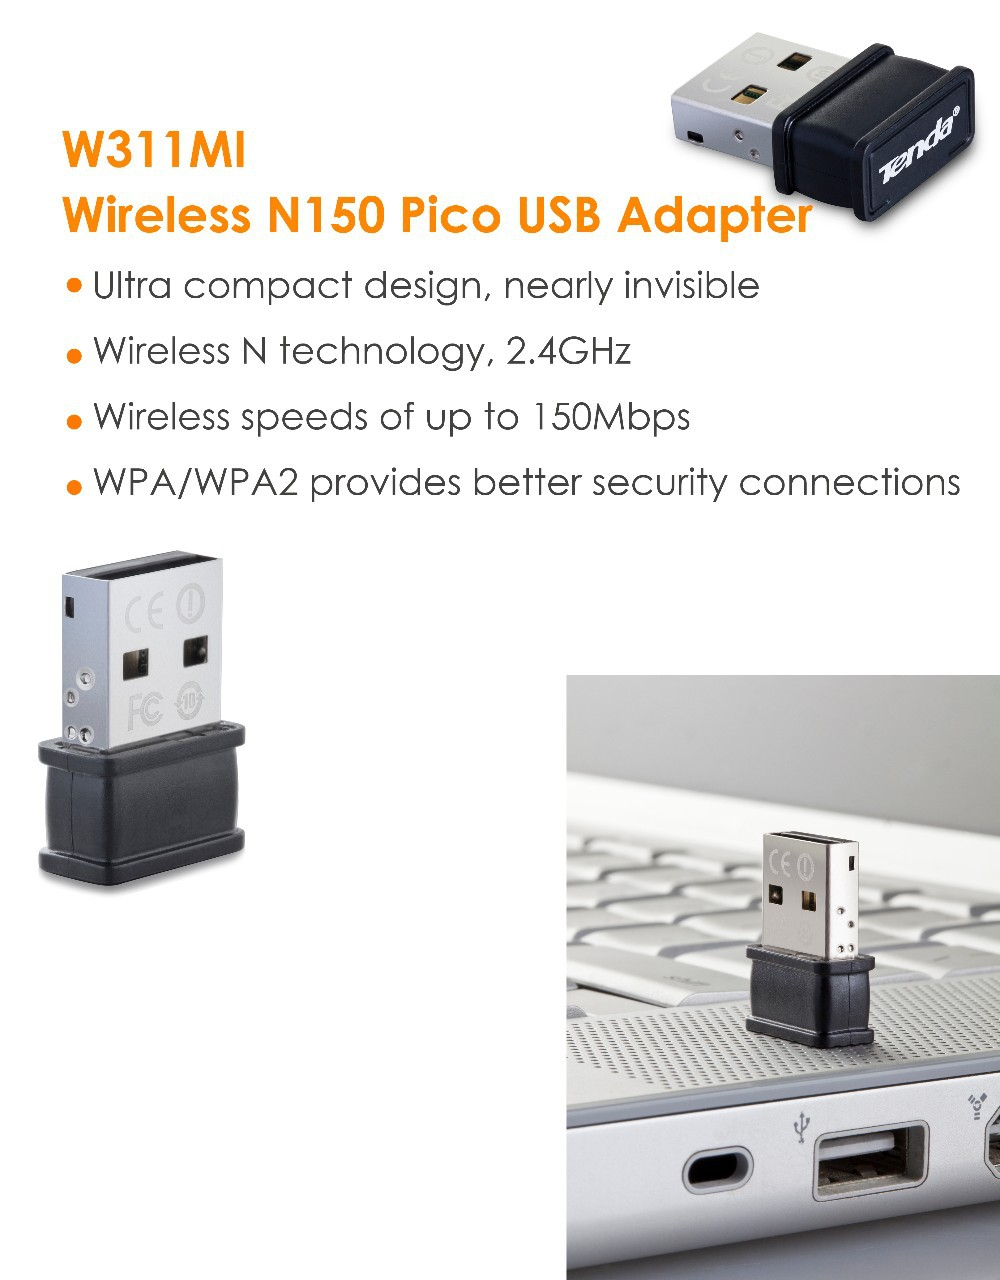 Us 2181 Tenda W311mi Wireless N150 Pico Usb Adapter English Os Compact And Smallest Design150mbpswpa Wpa2 24ghz 11n In Network Cards From Ultra Devices Parallel Flash Product Description